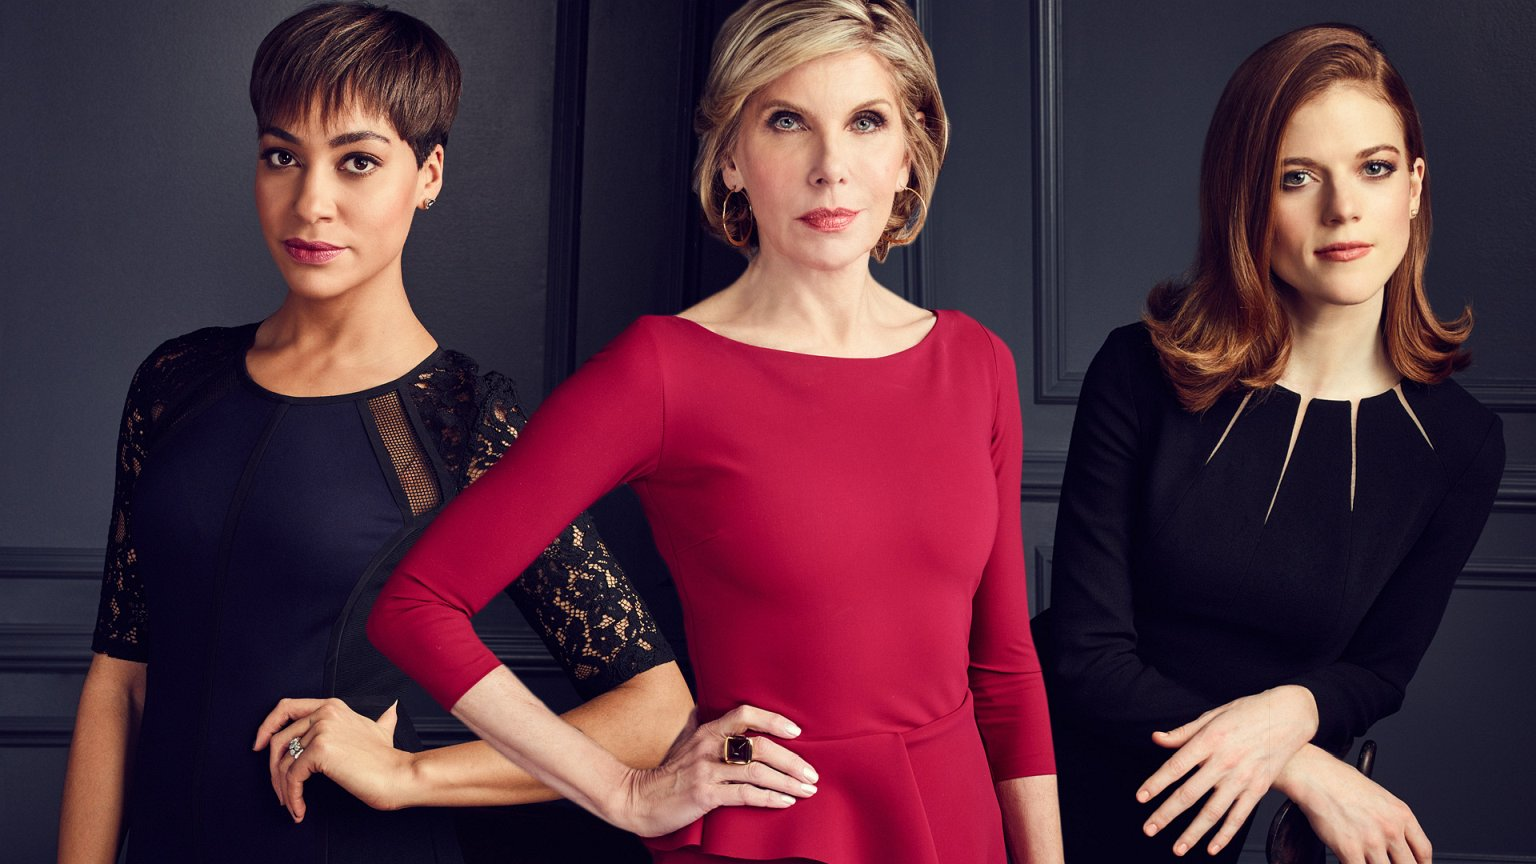 The Good Fight S2 episode 12 watch online